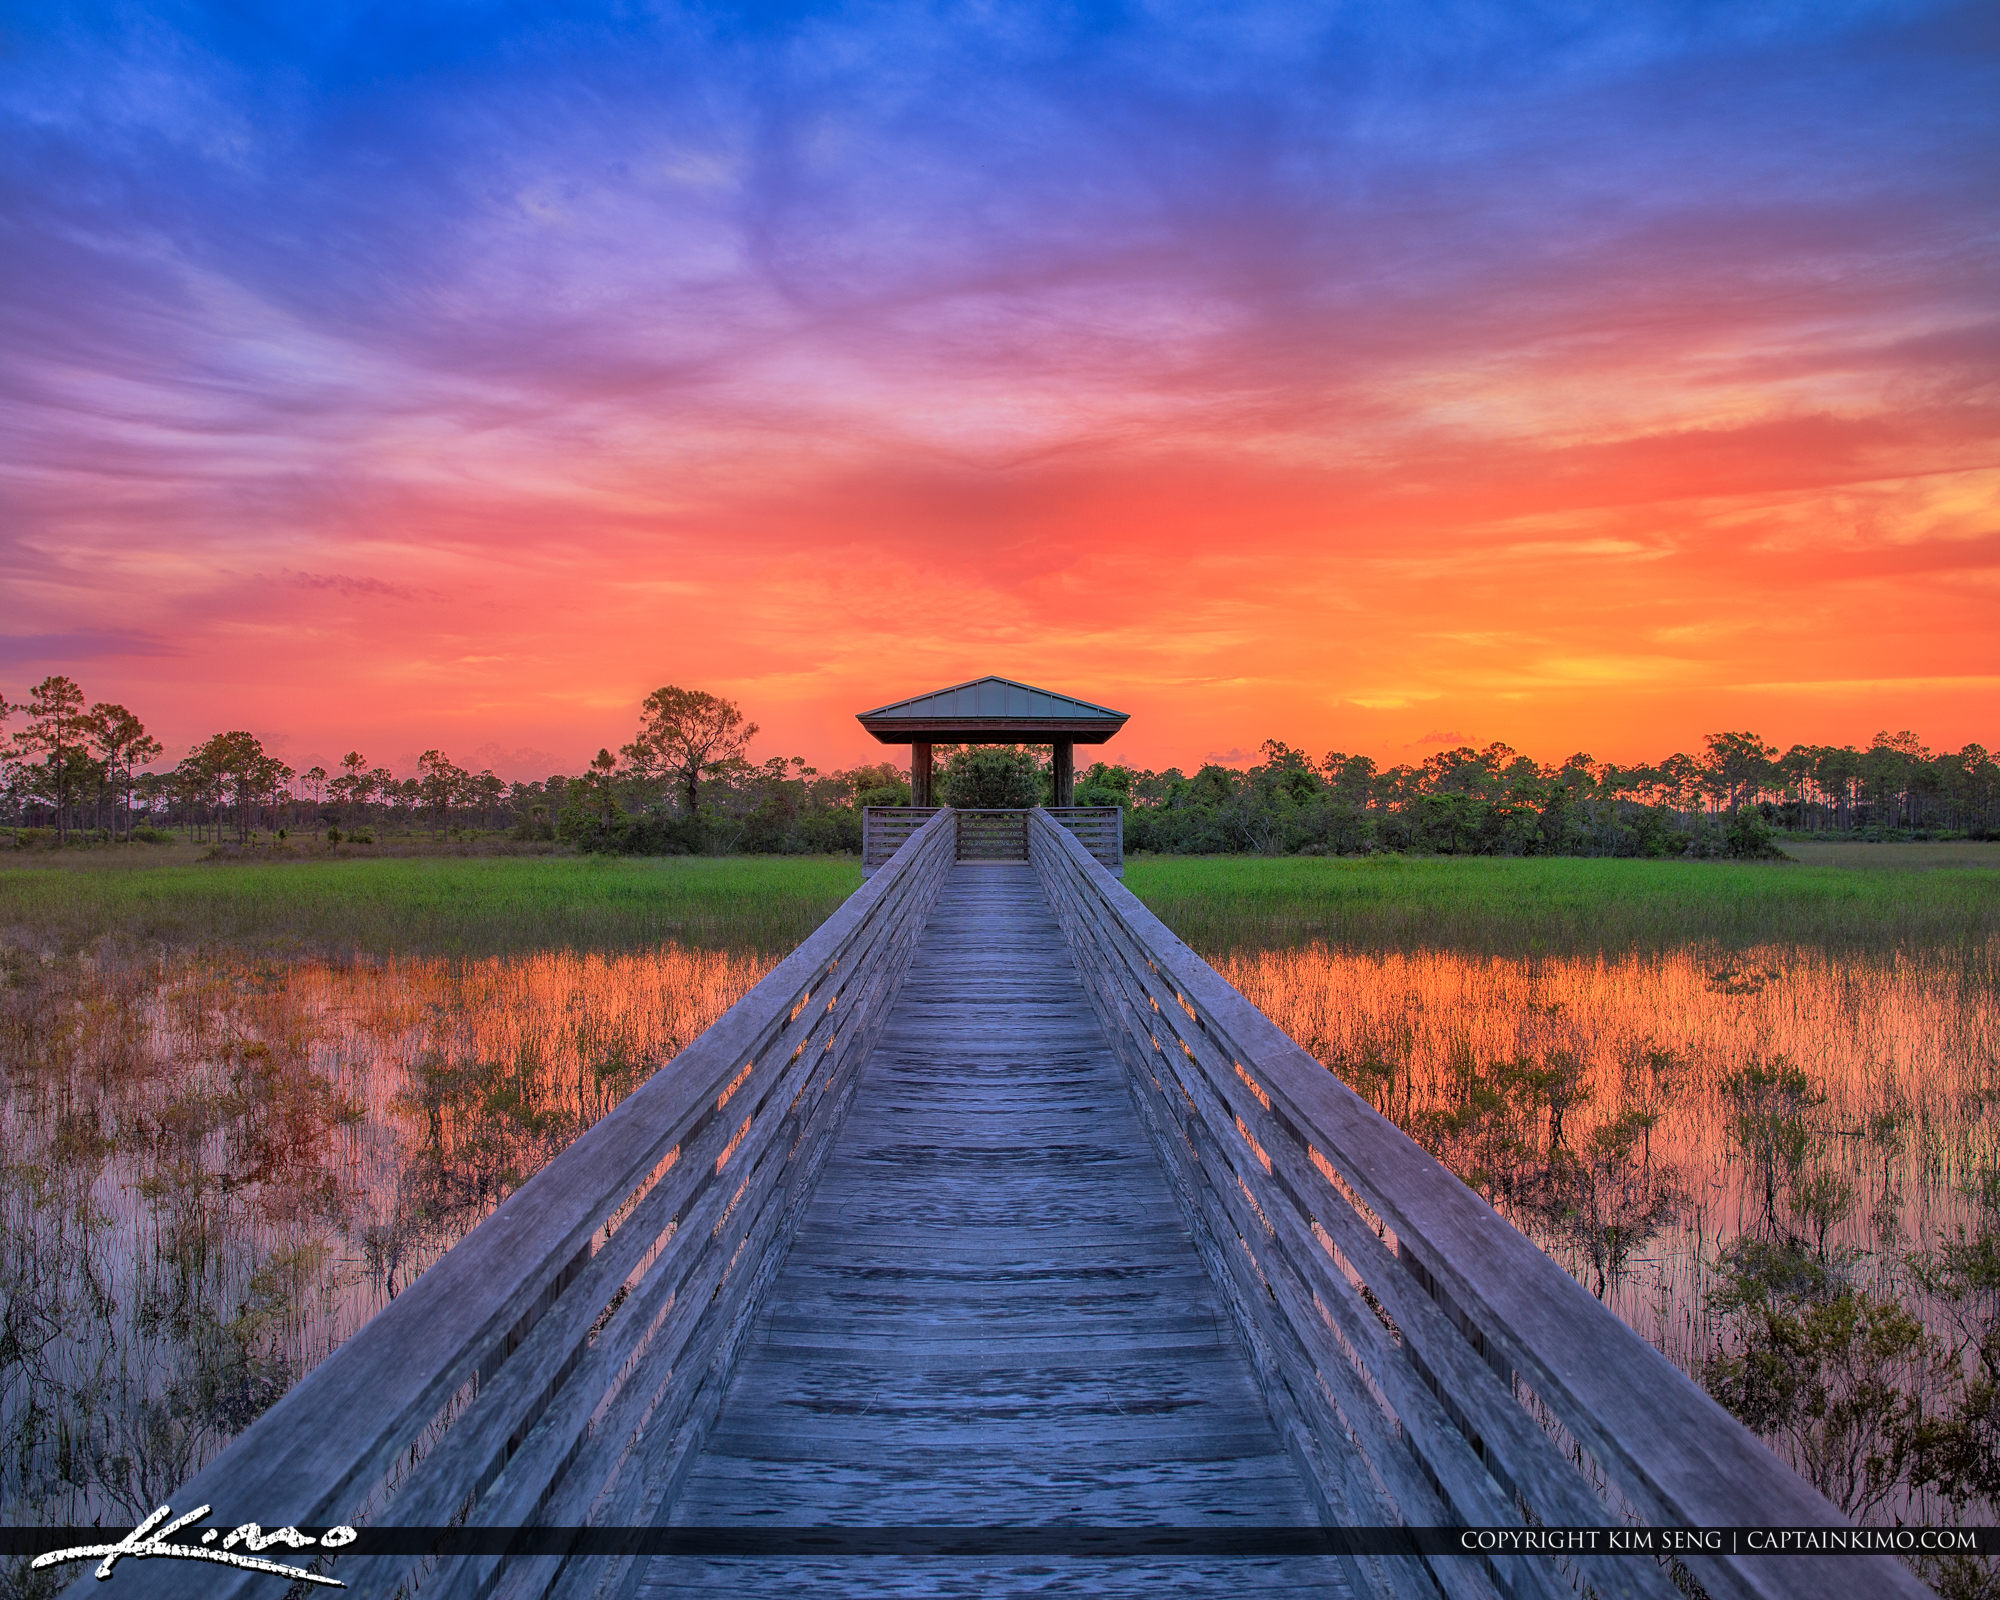 Sunset from Sweetbay Natural Area in Palm Beach Gardens